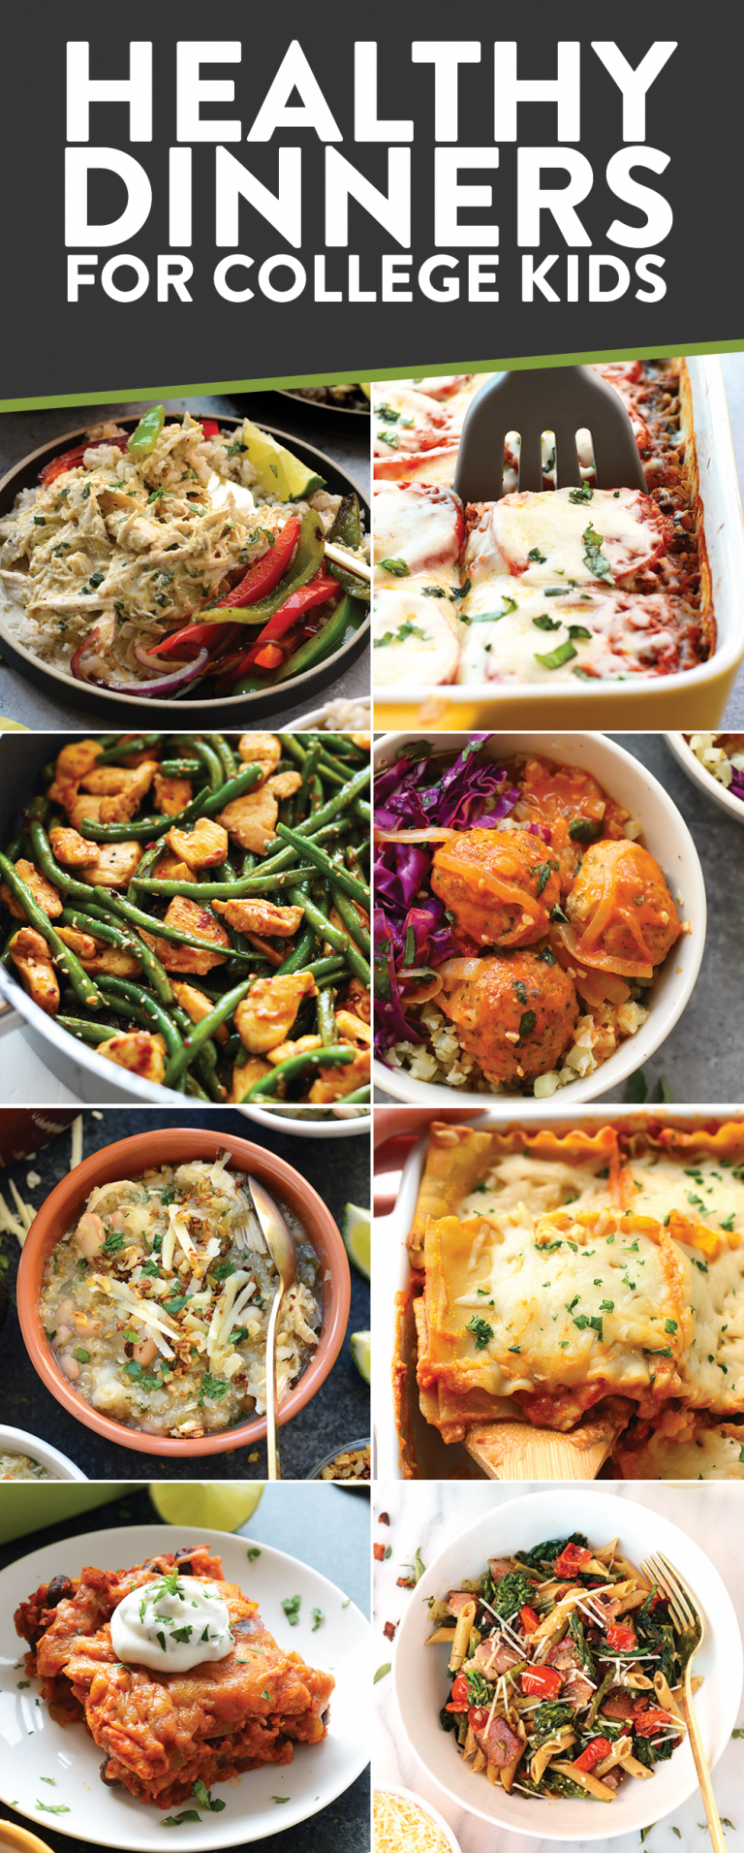 These dinner recipes are perfect for college students on a budget ...